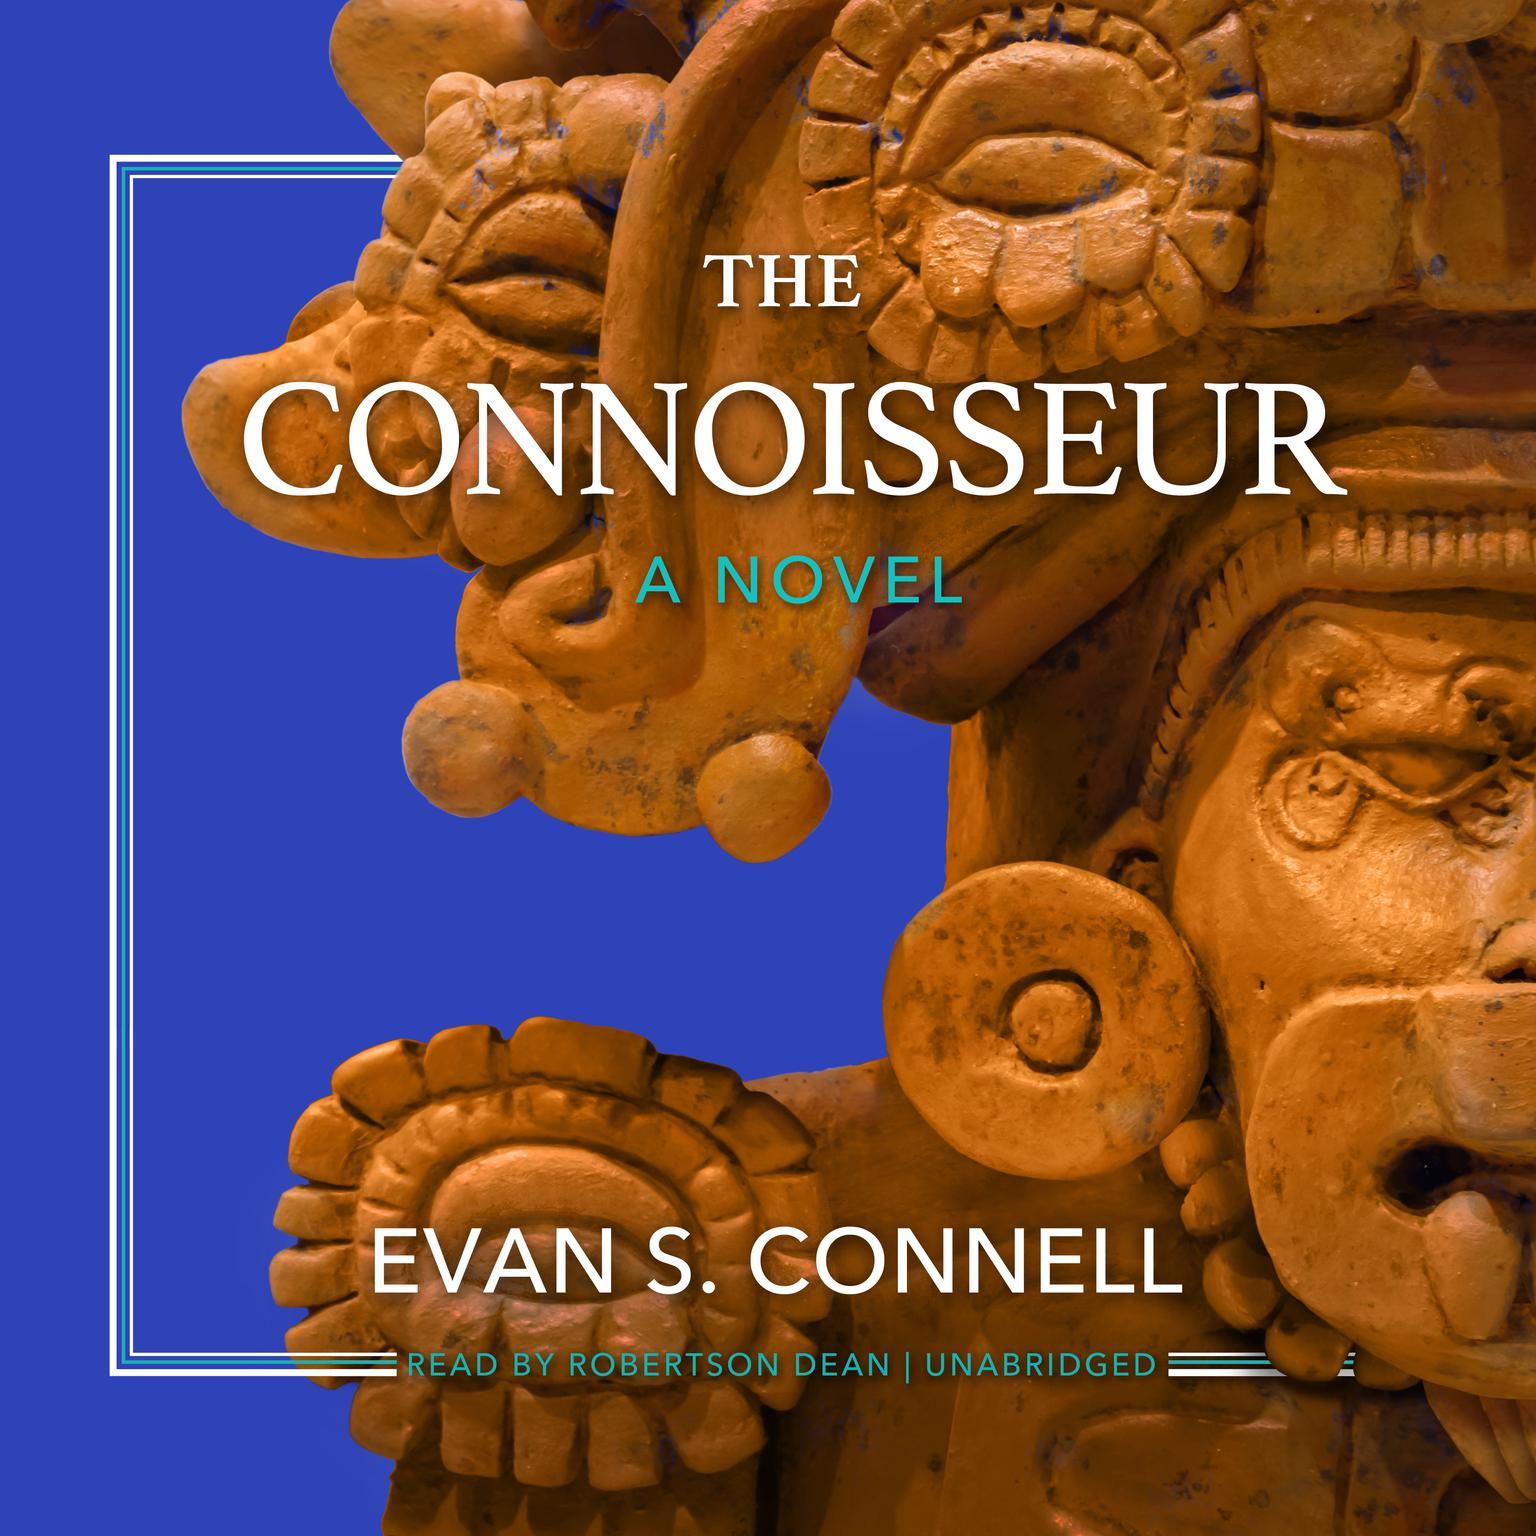 The Connoisseur: A Novel Audiobook, by Evan S. Connell